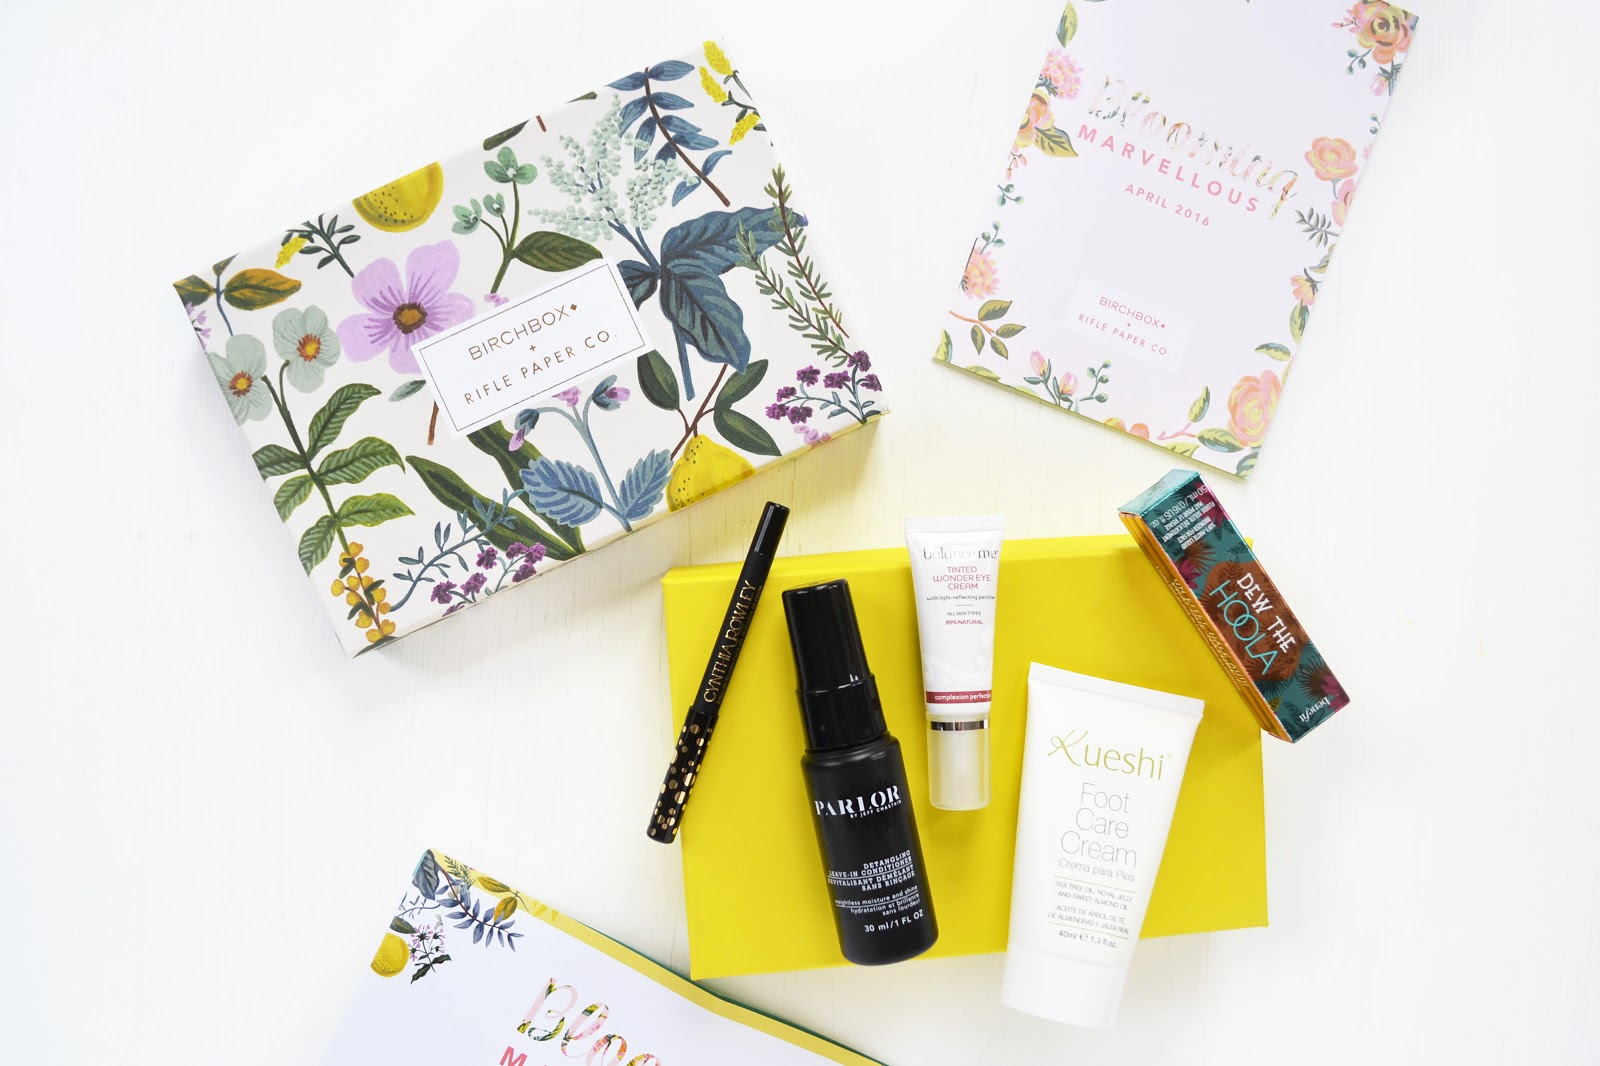 birchbox april 2016, birchbox and rifle paper co